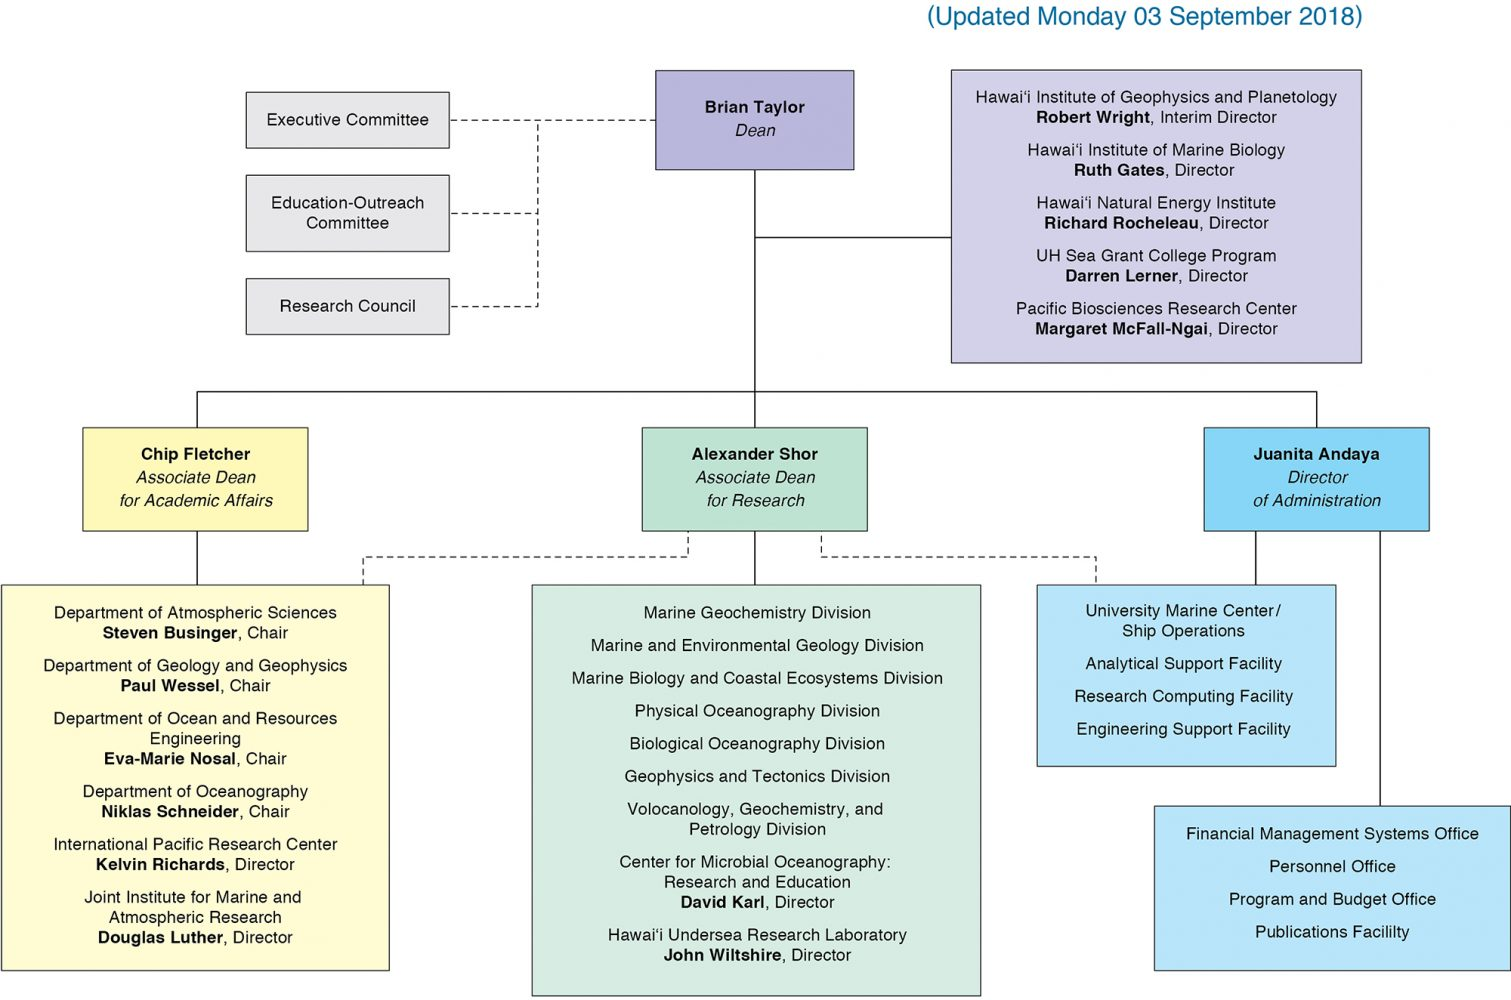 SOEST 2018 Organization Chart (as of 09-03-18)